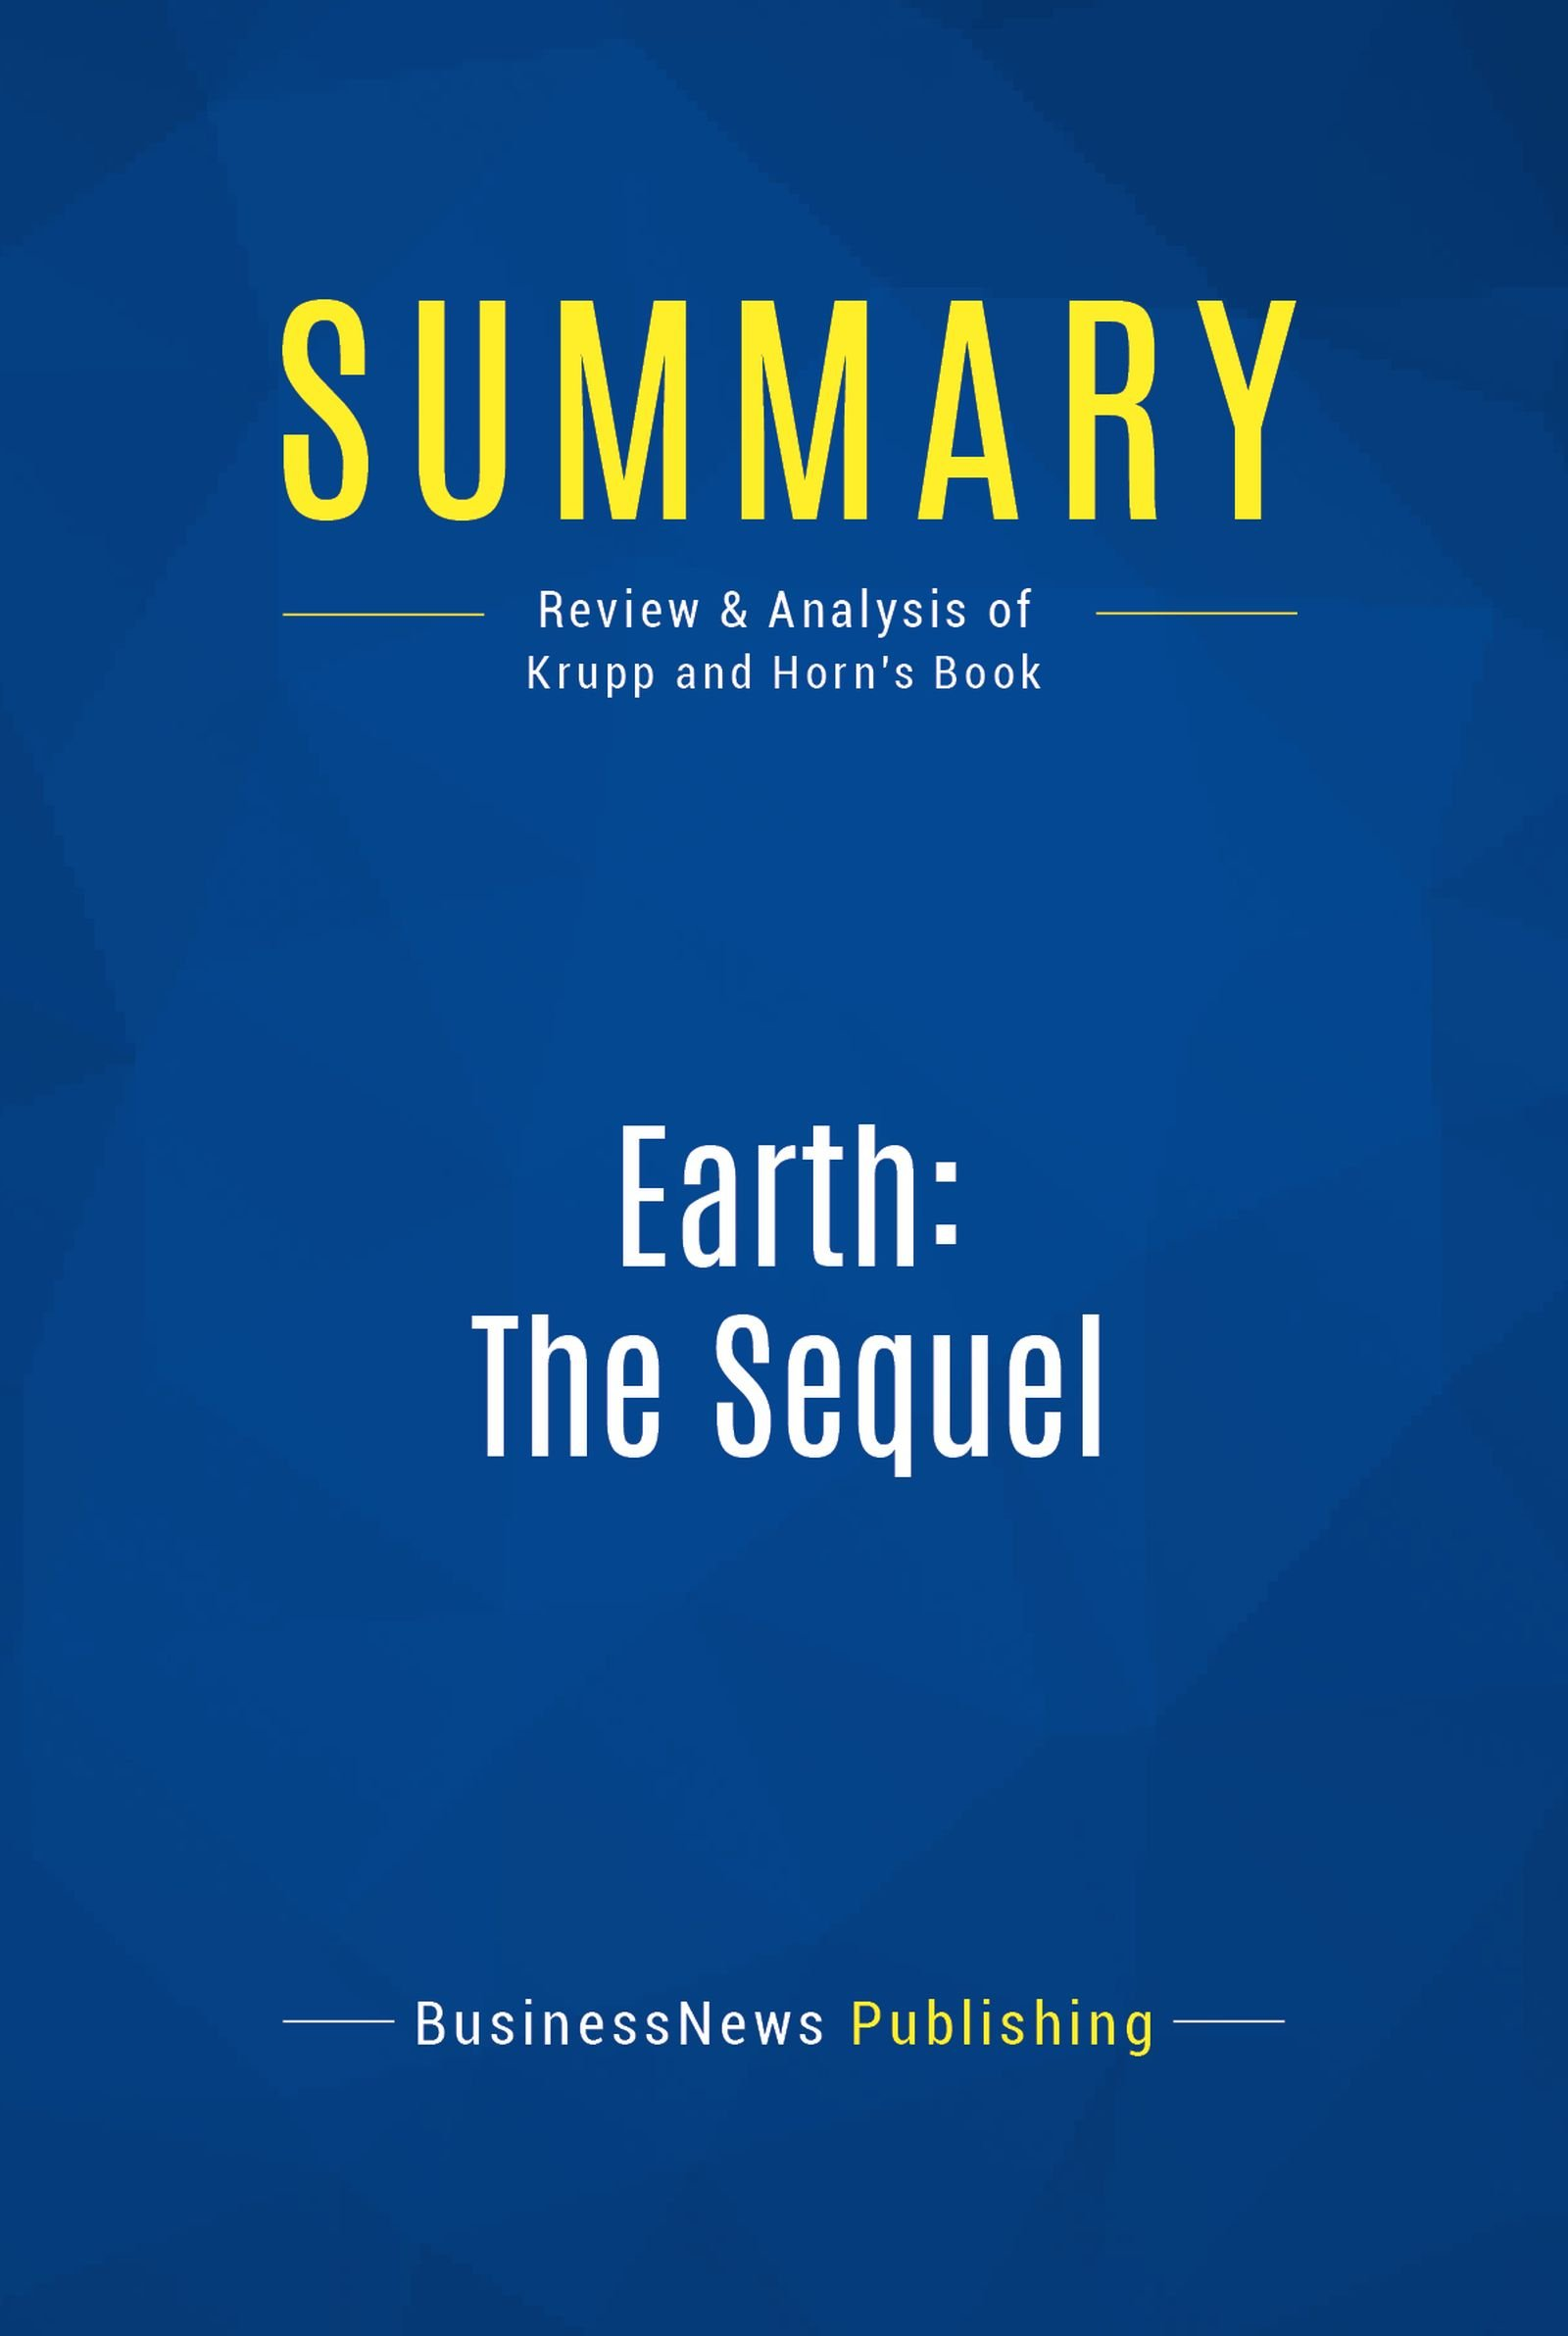 Summary: Earth: The Sequel: Review and Analysis of Krupp and Horn's Book